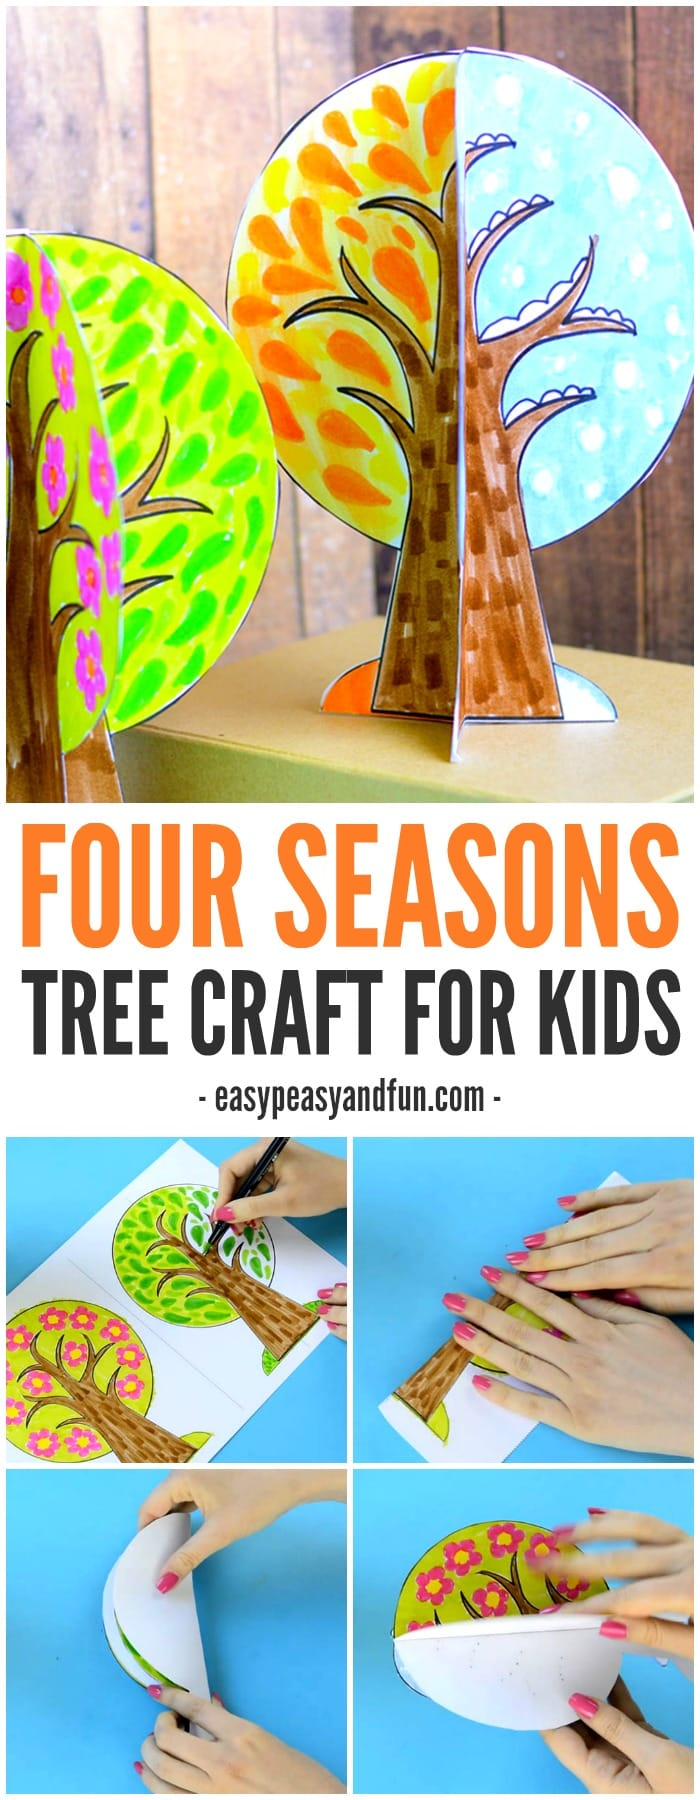 Home Craft Ideas Toddlers